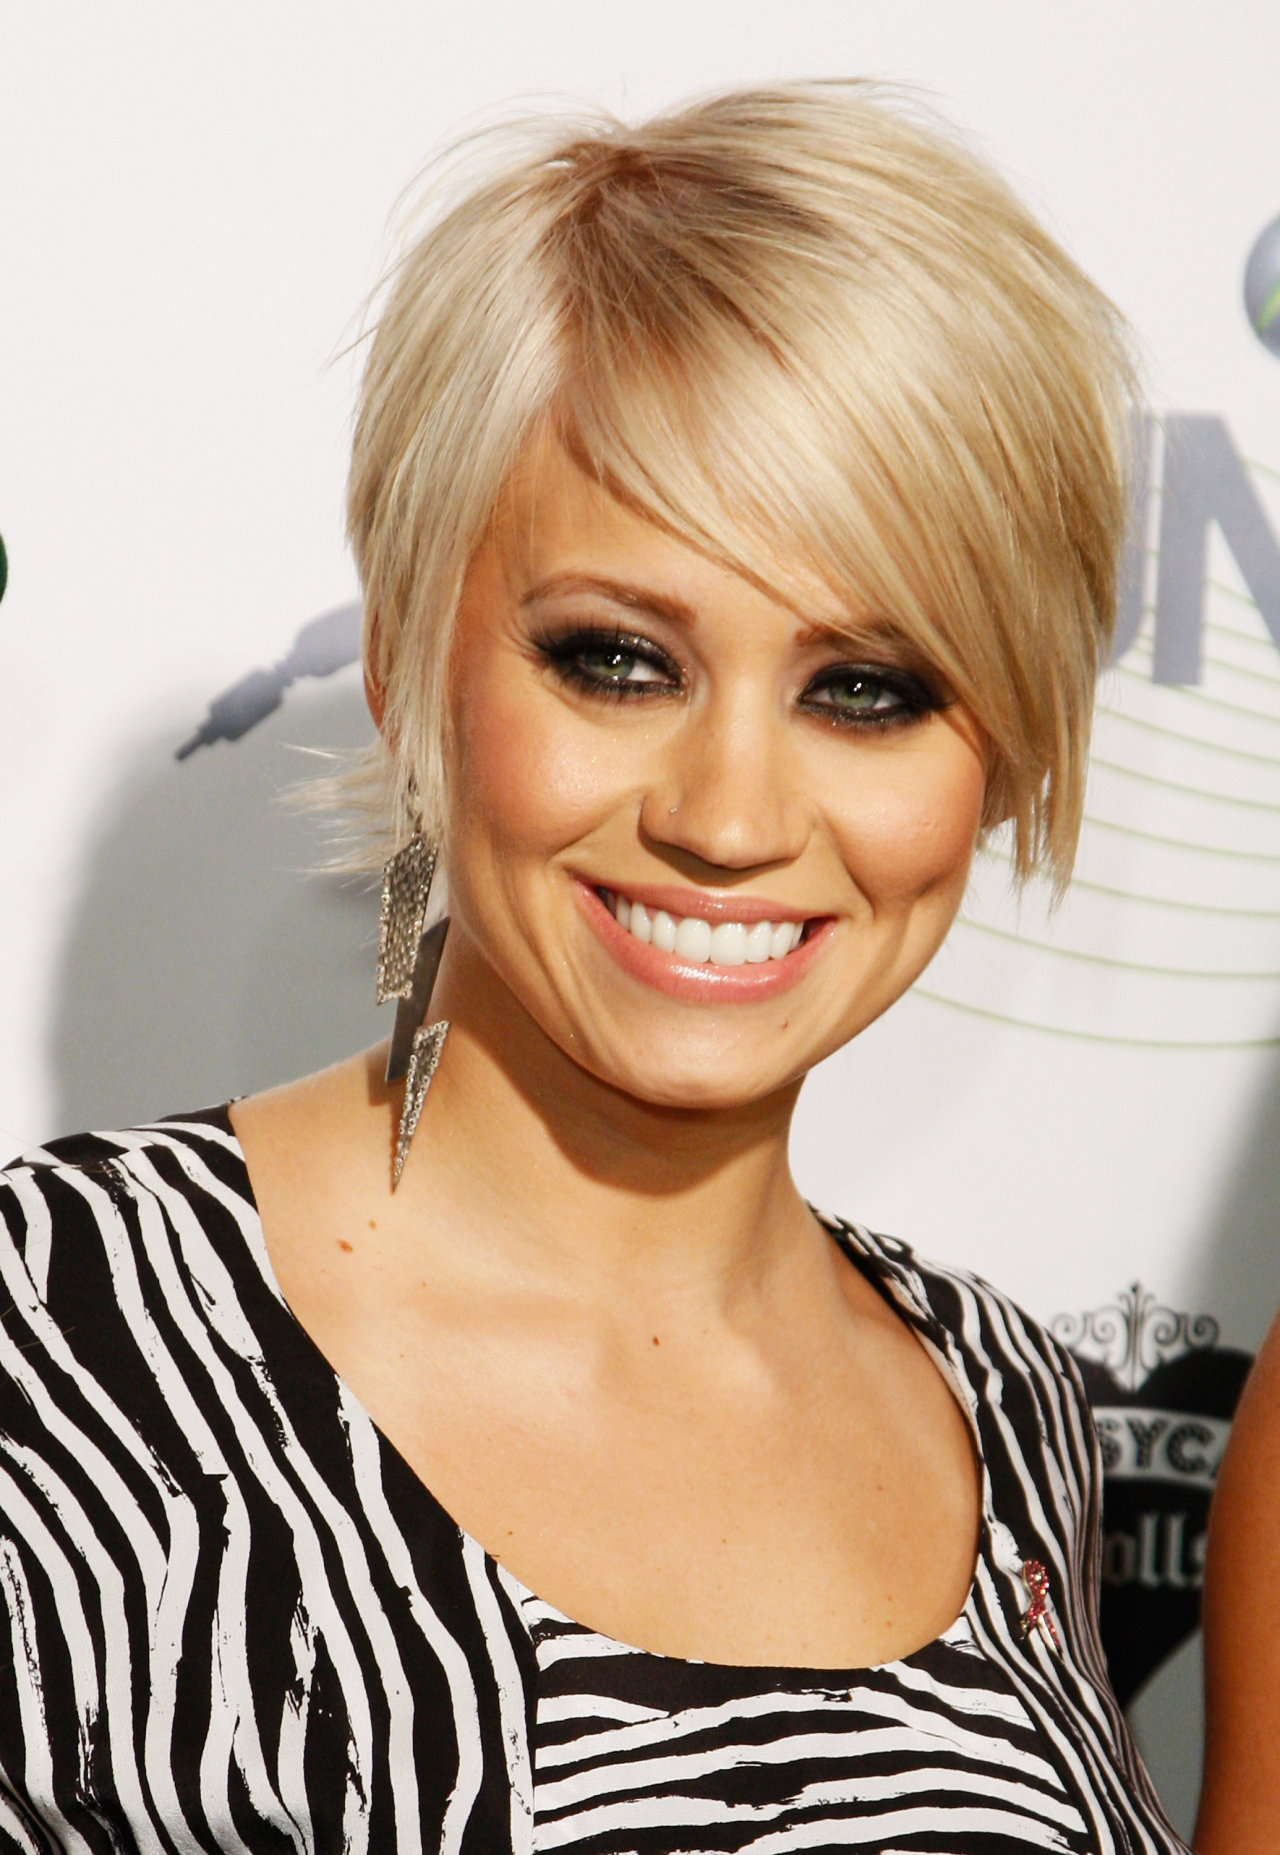 Kimberly Wyatt earned a  million dollar salary - leaving the net worth at 0.8 million in 2017